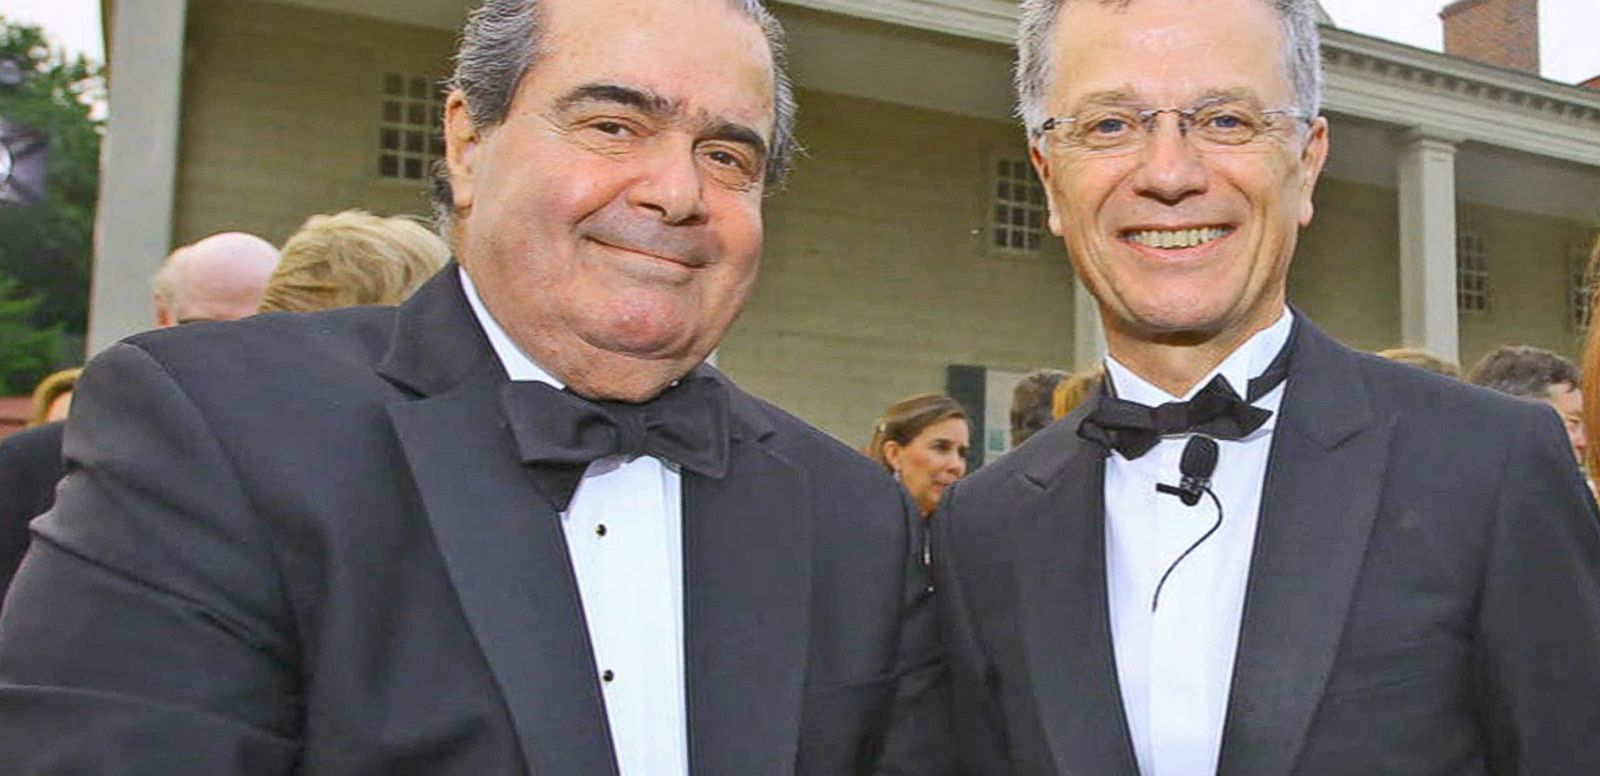 VIDEO: Justice Antonin Scalia Dies at Age 79